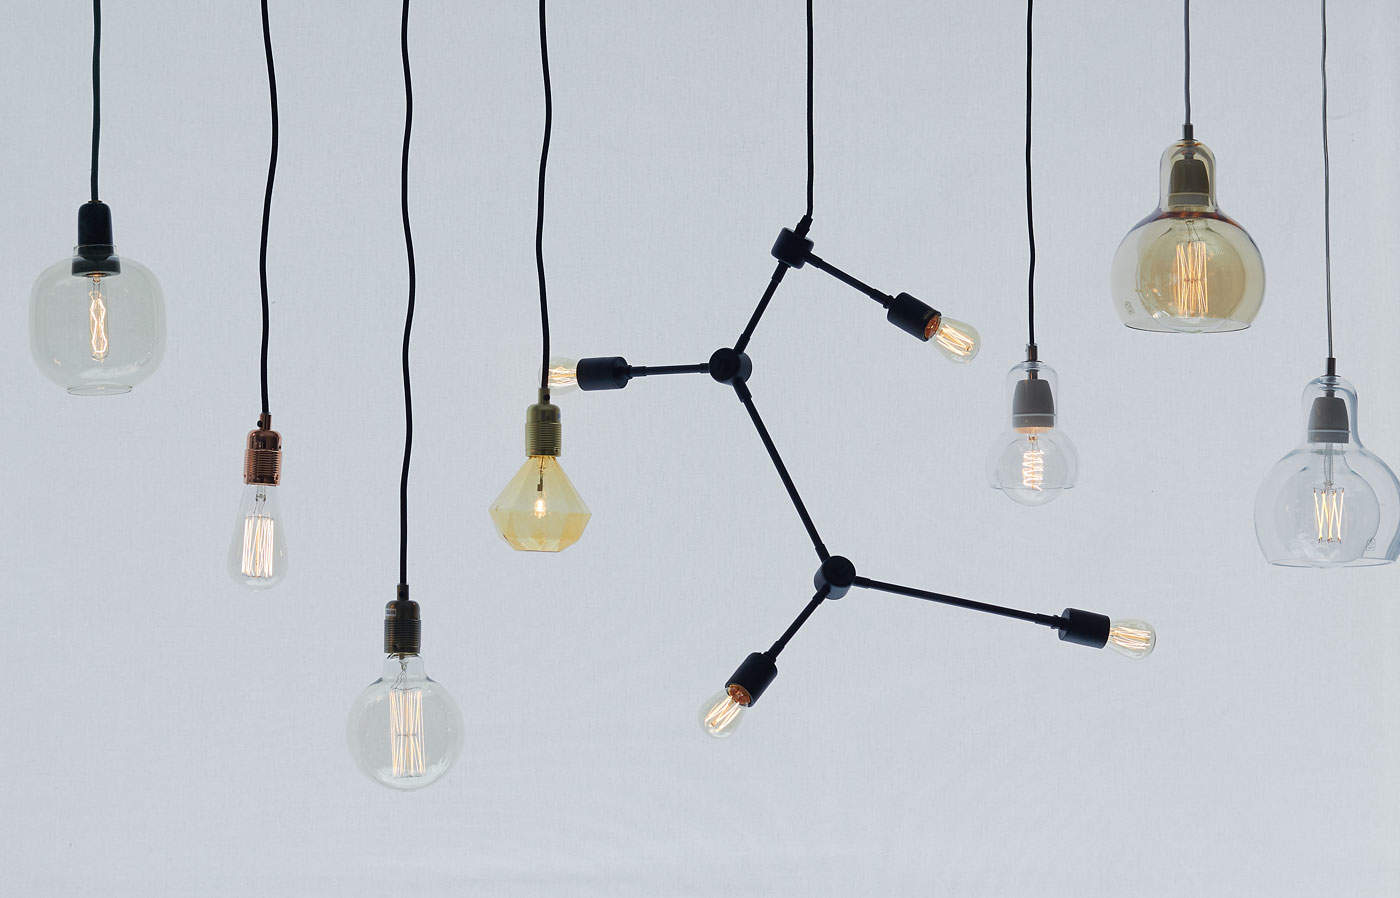 DesignVille Store: Retro lights